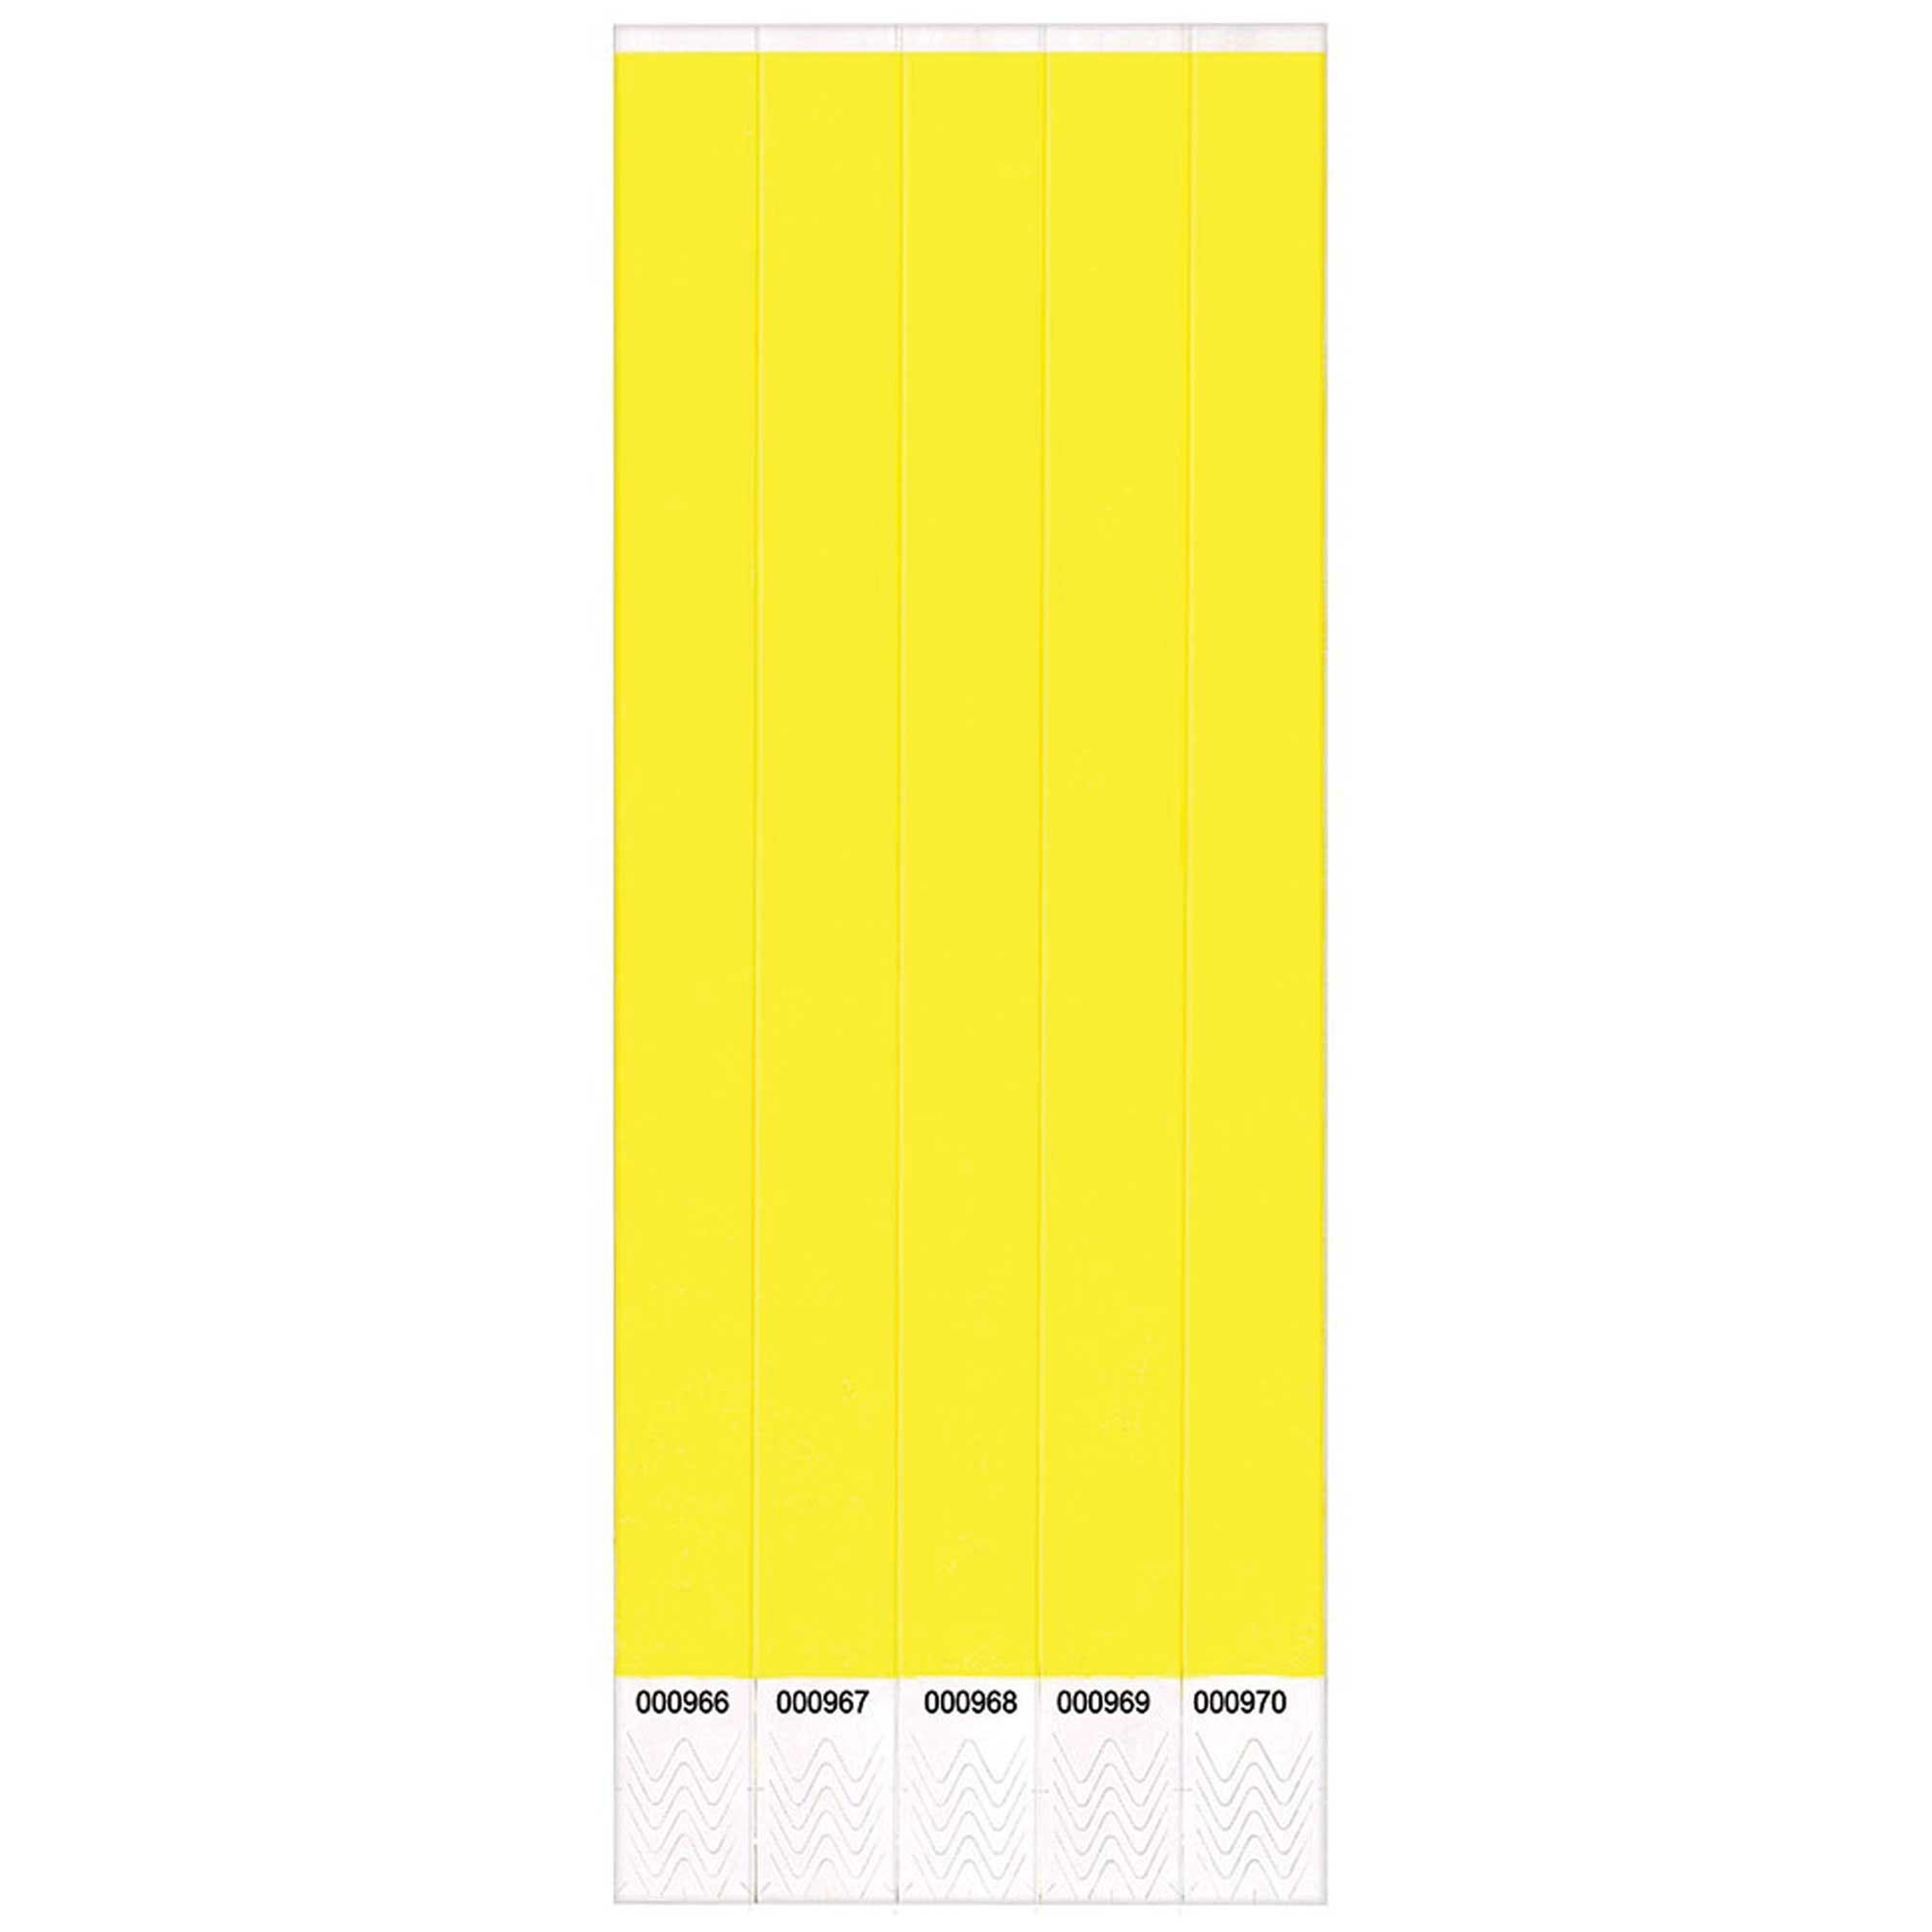 Wristbands Yellow Value Pack 100 Numbered Bands